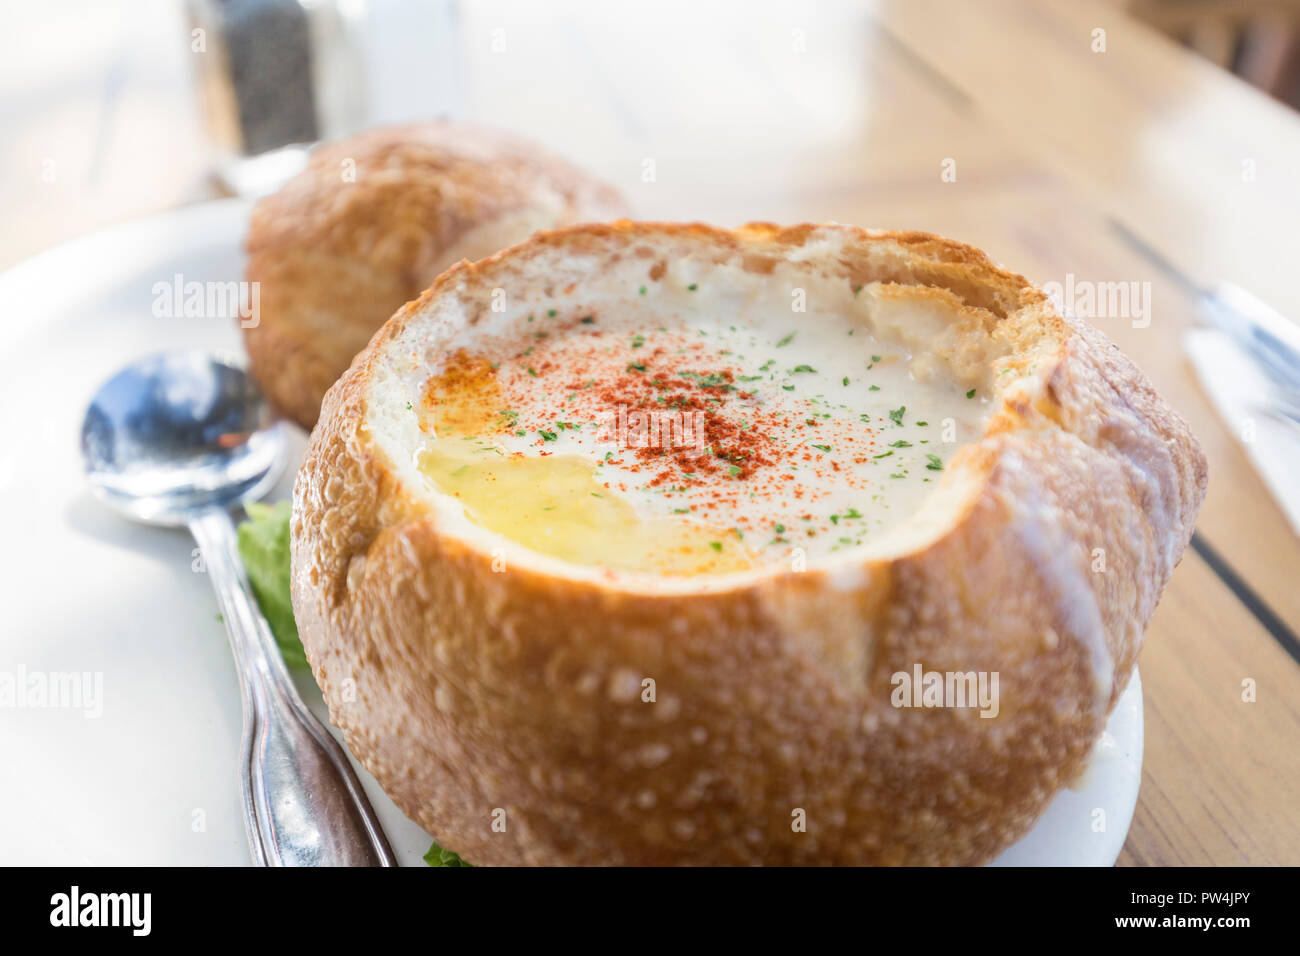 Nothing like a bowl of clam chowder to take the chill out in Cannon Beach, Oregon, USA. - Stock Image